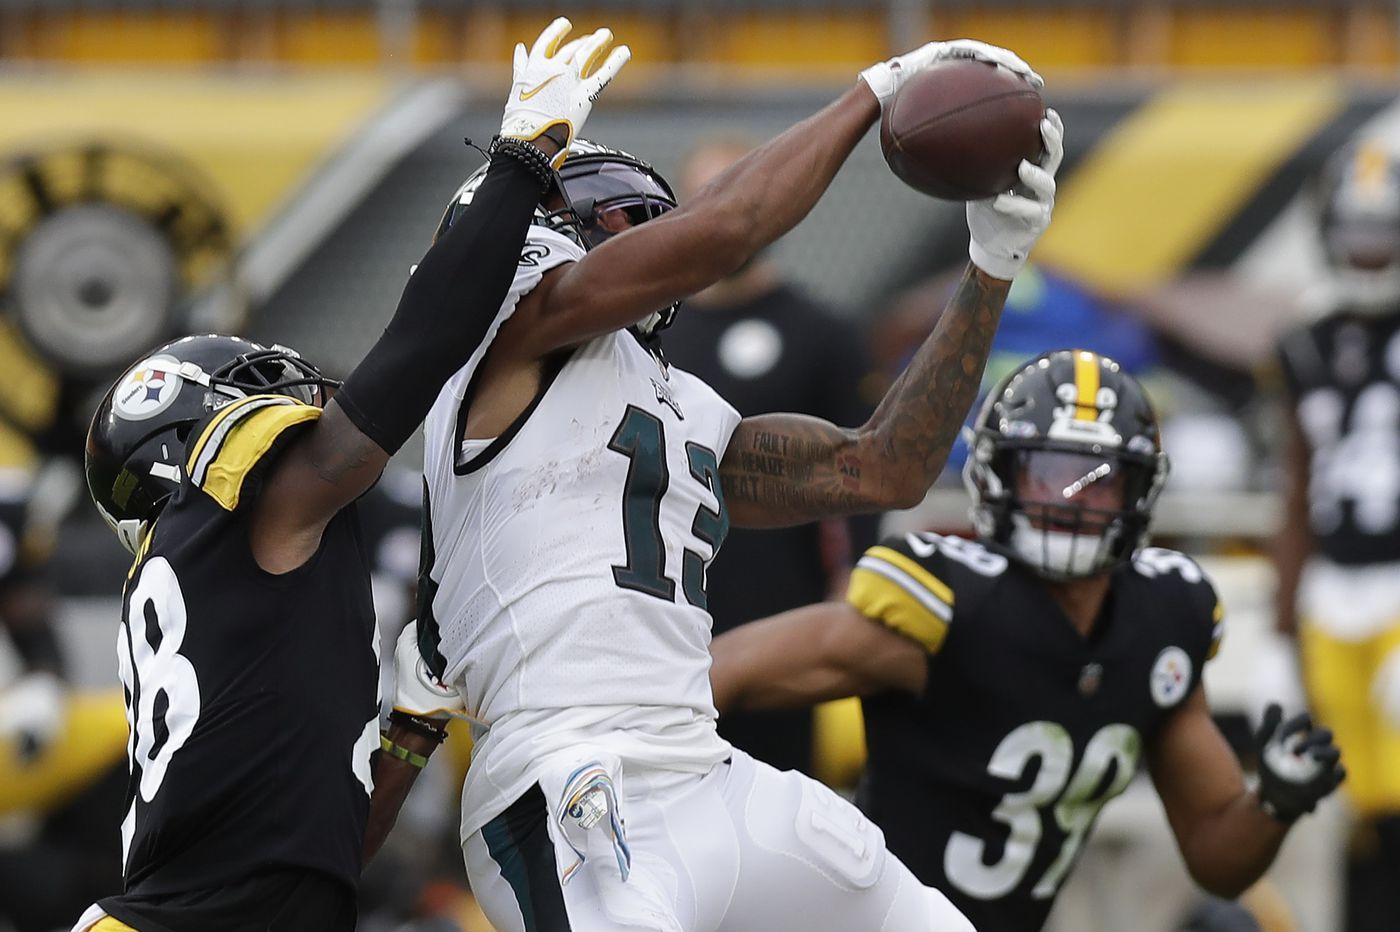 Travis Fulgham connects with Carson Wentz as one of the Eagles' few bright spots vs. Steelers